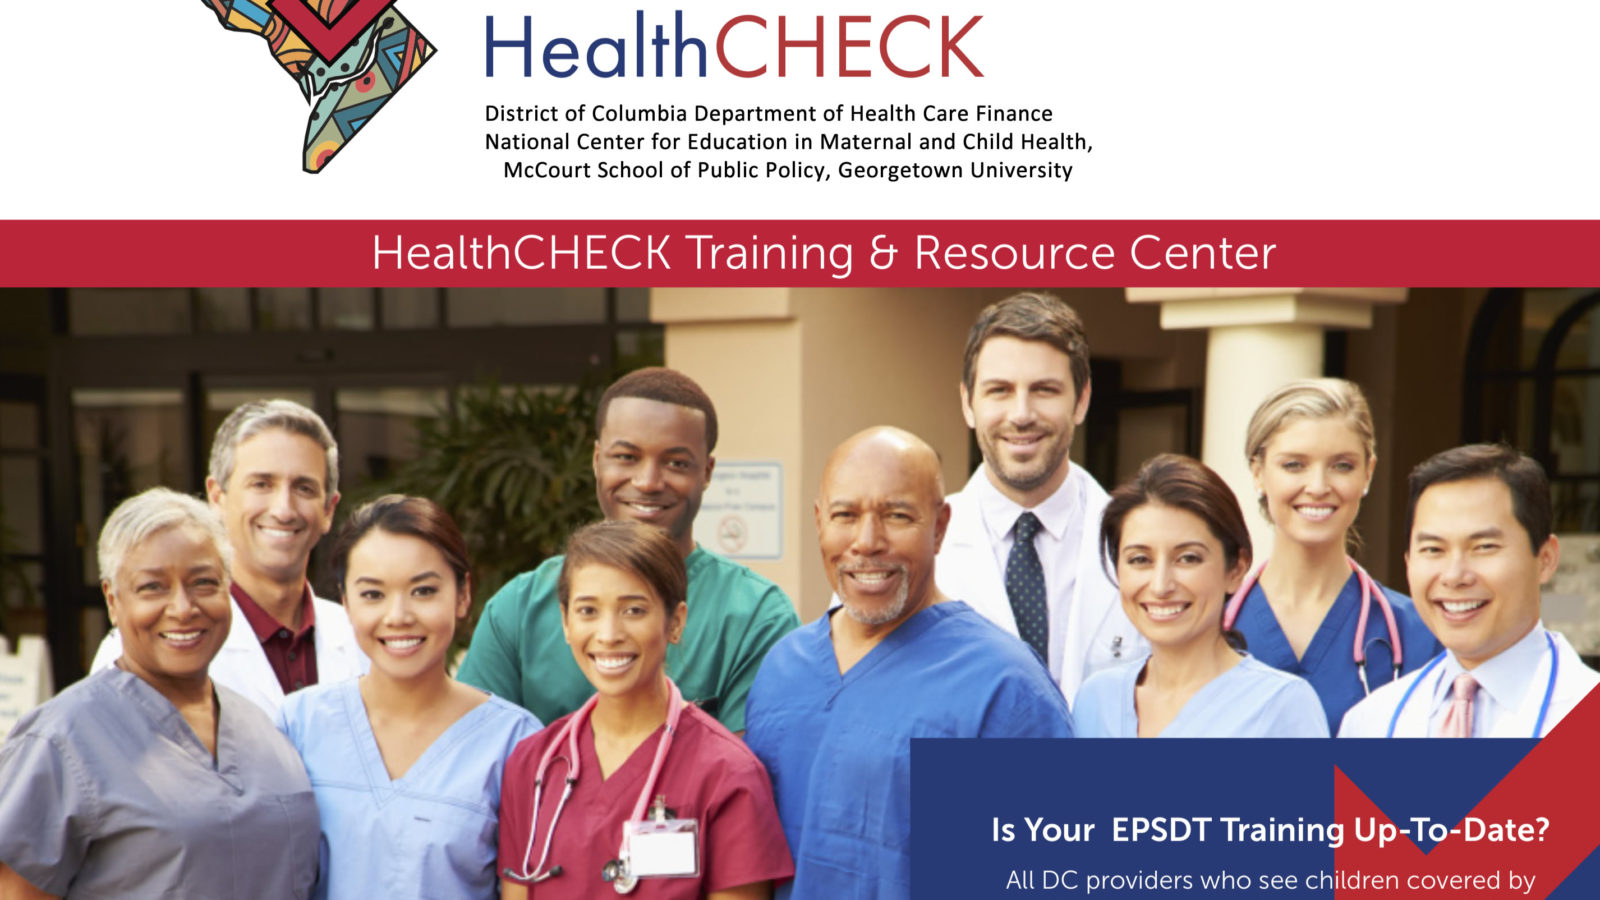 Image of the team involved with HealthCHECK. Is your EPSDT training up to date?